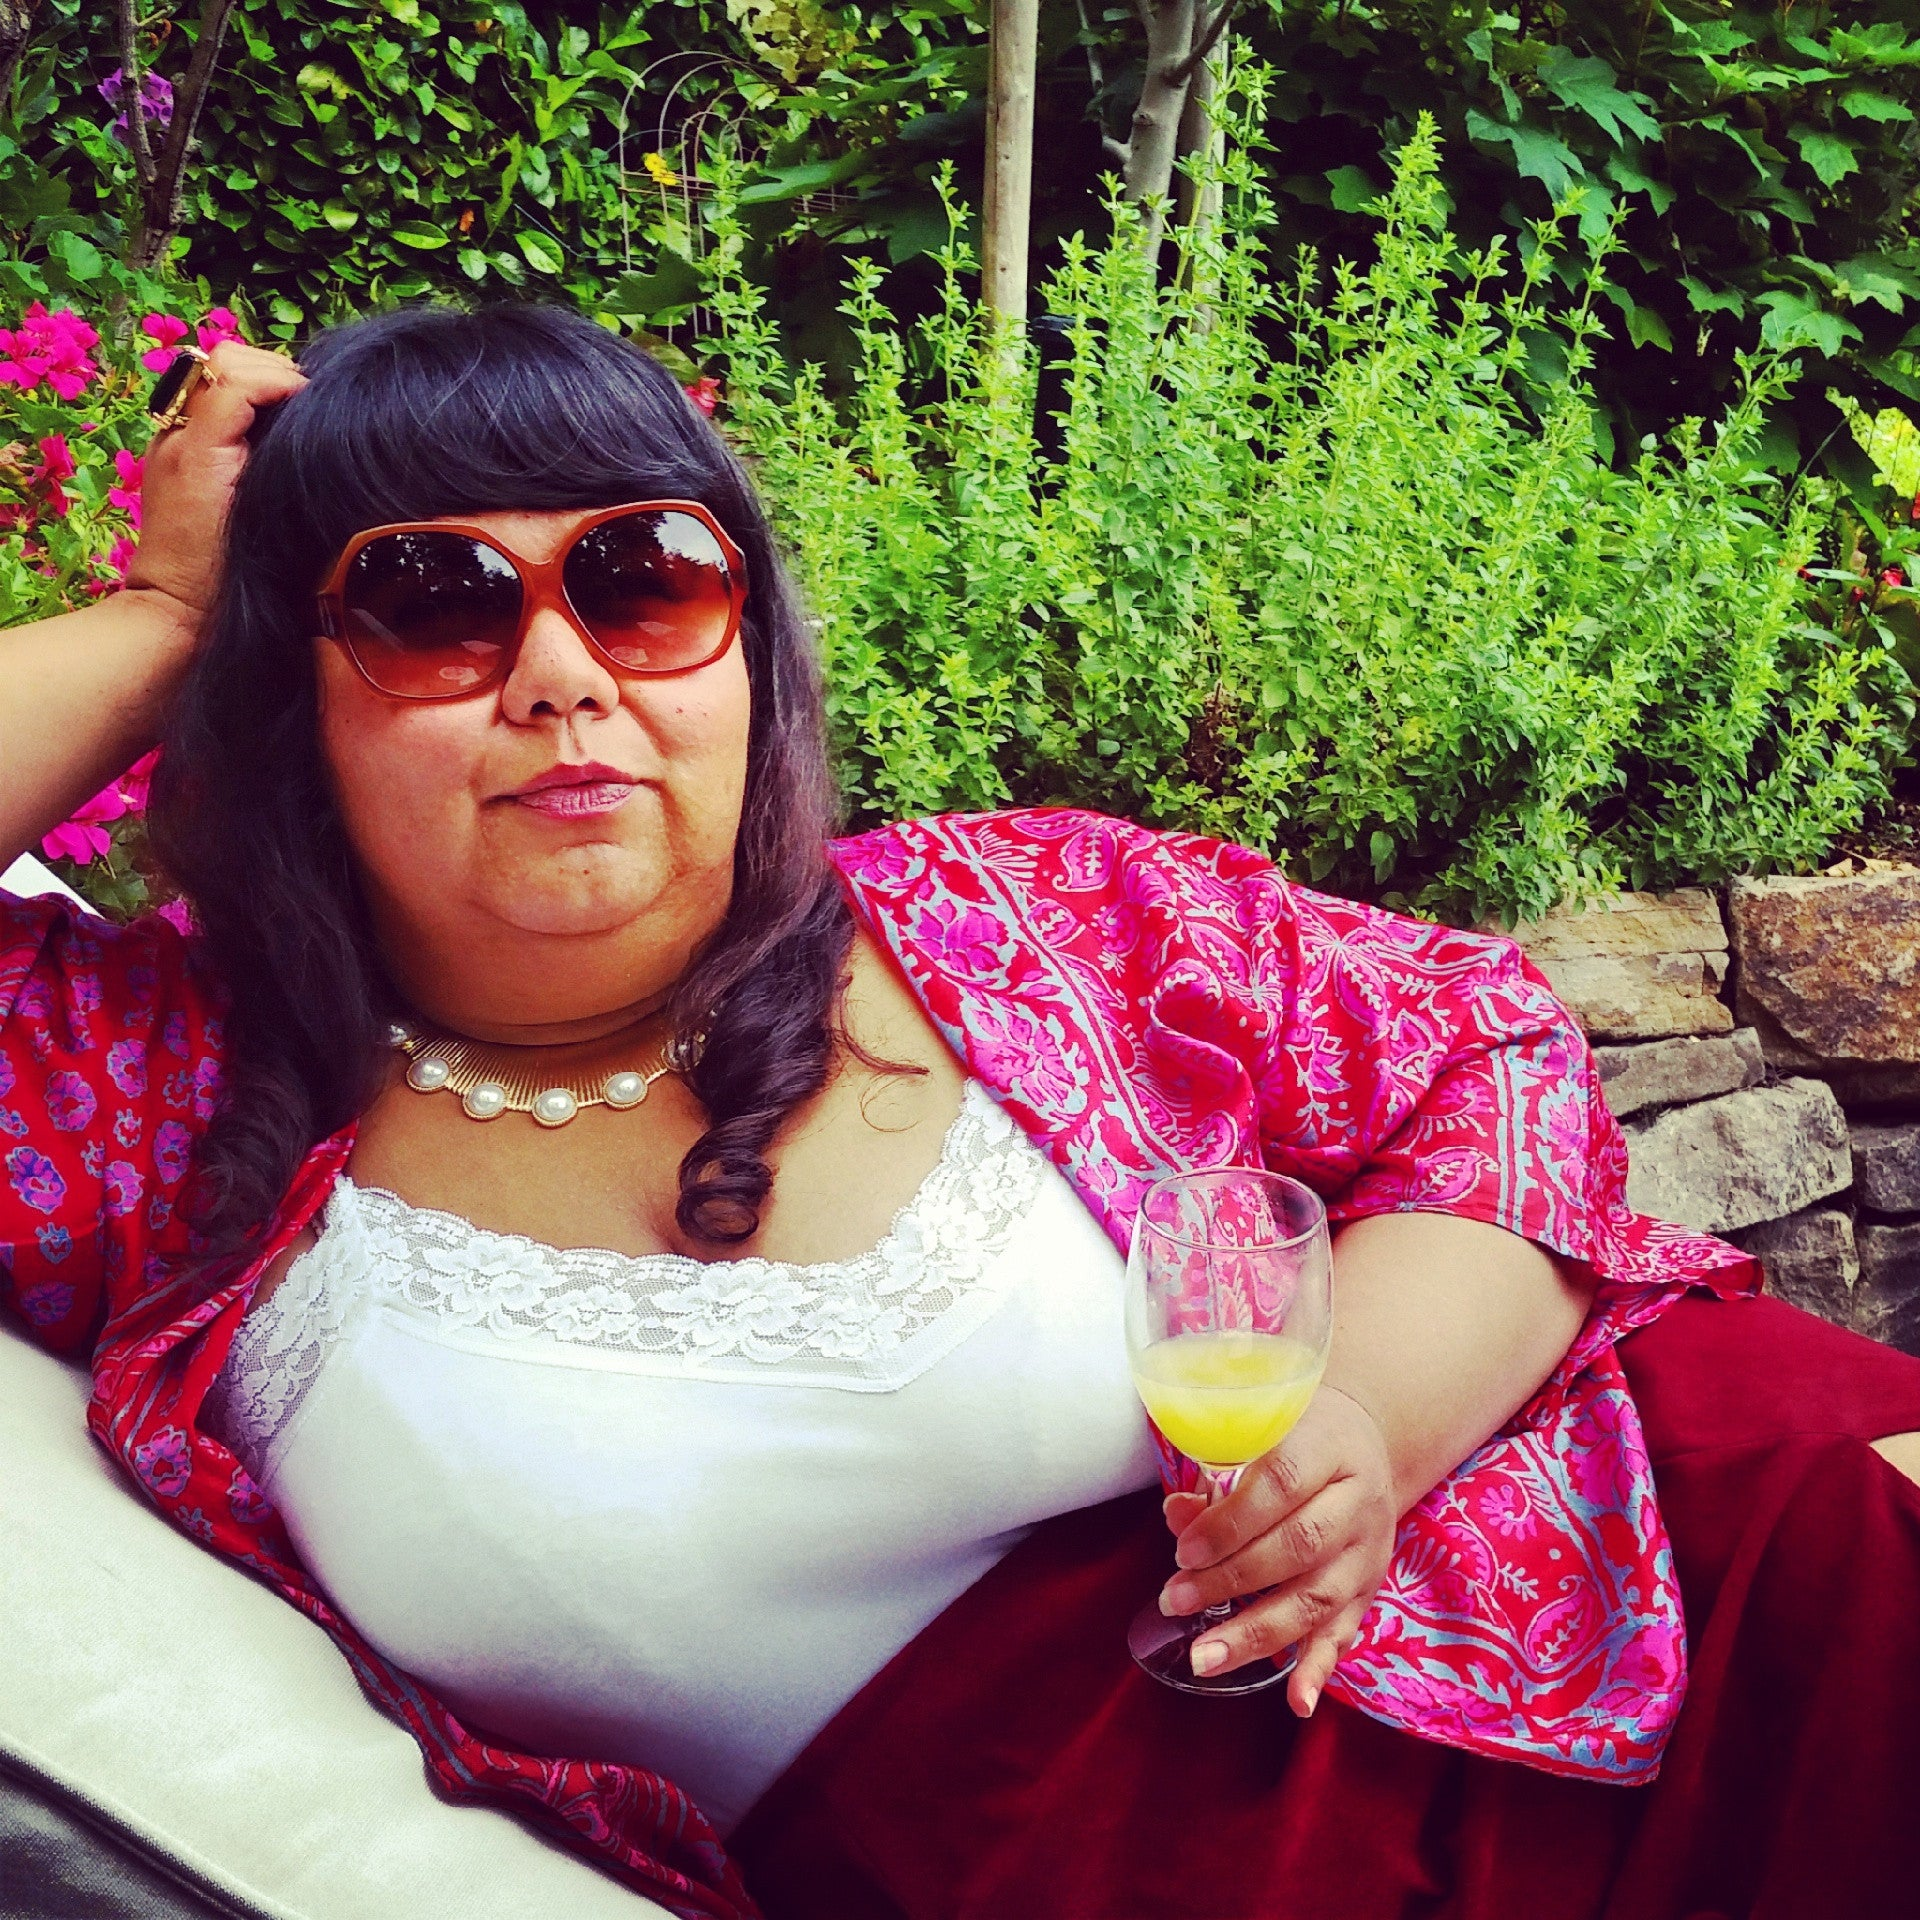 virgie dating Growing up as a fat girl, virgie tovar believed that her body was something to be  fixed but after two decades of dieting and constant guilt, she.